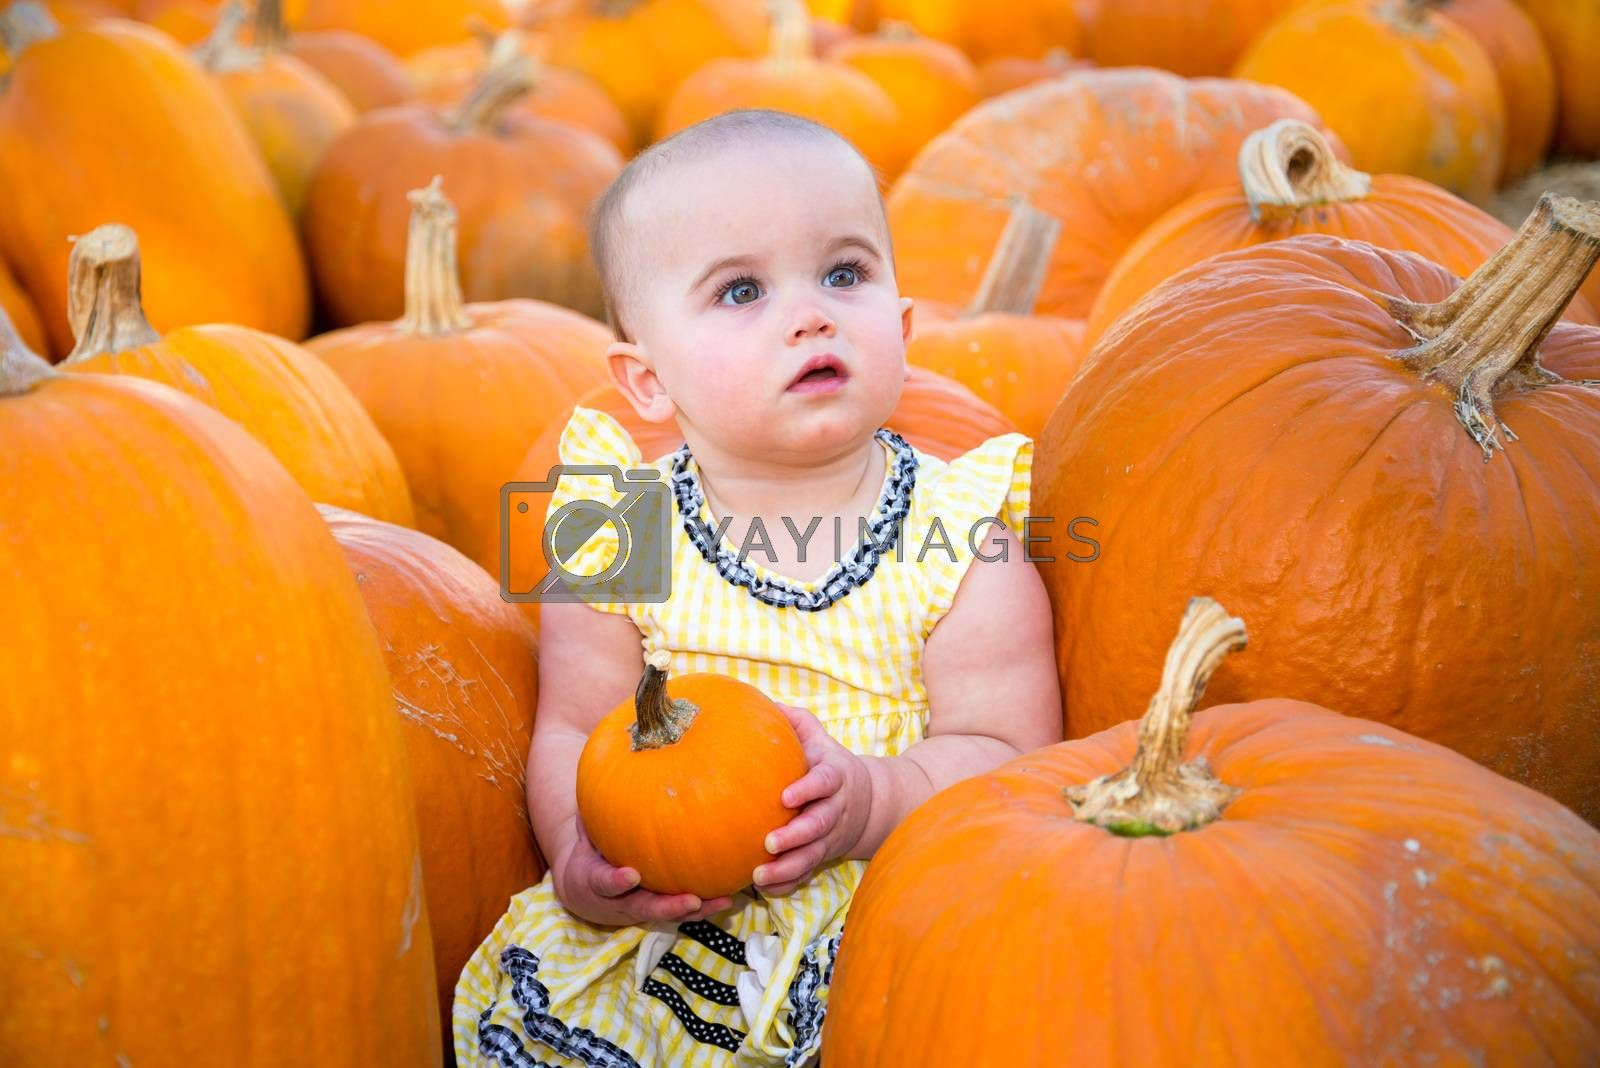 Cute Pumpkin Patch Baby holding a small pumpkin